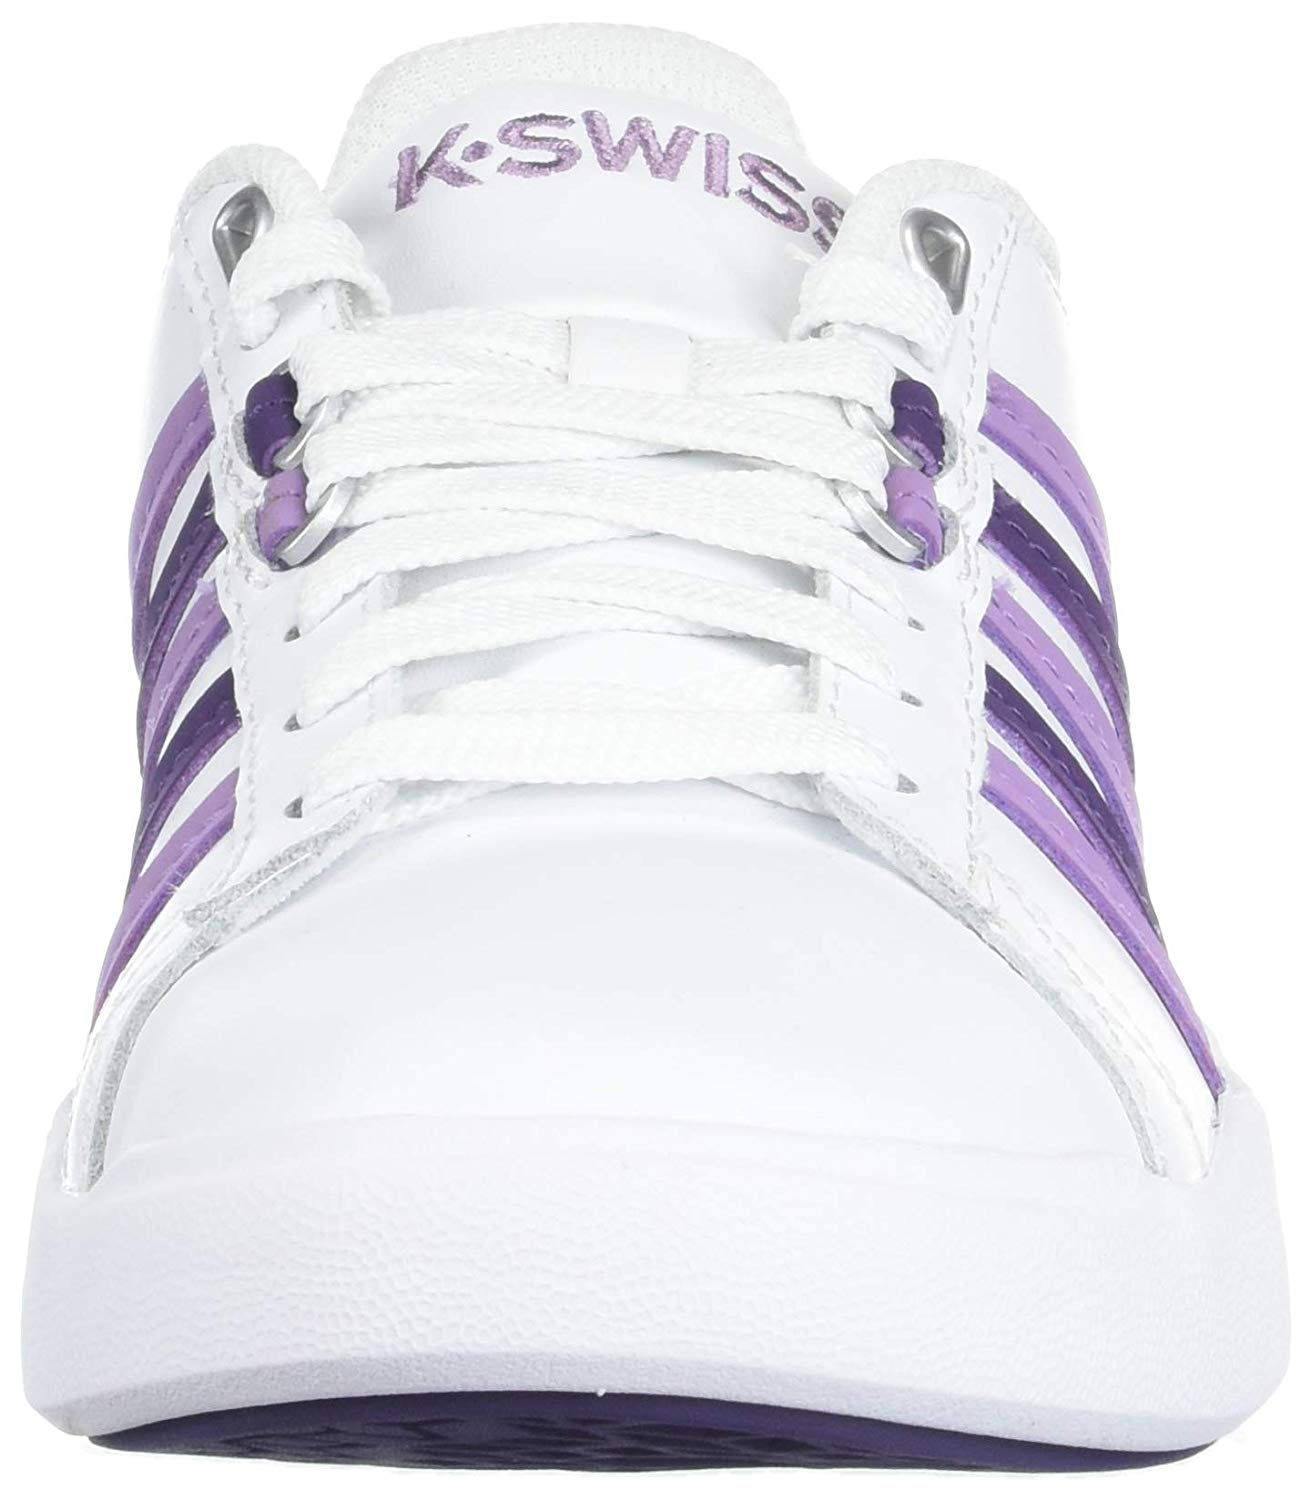 eec9928e97f8d Details about K-Swiss Women's Pershing Court Light CMF Sneaker, White, Size  9.0 azea